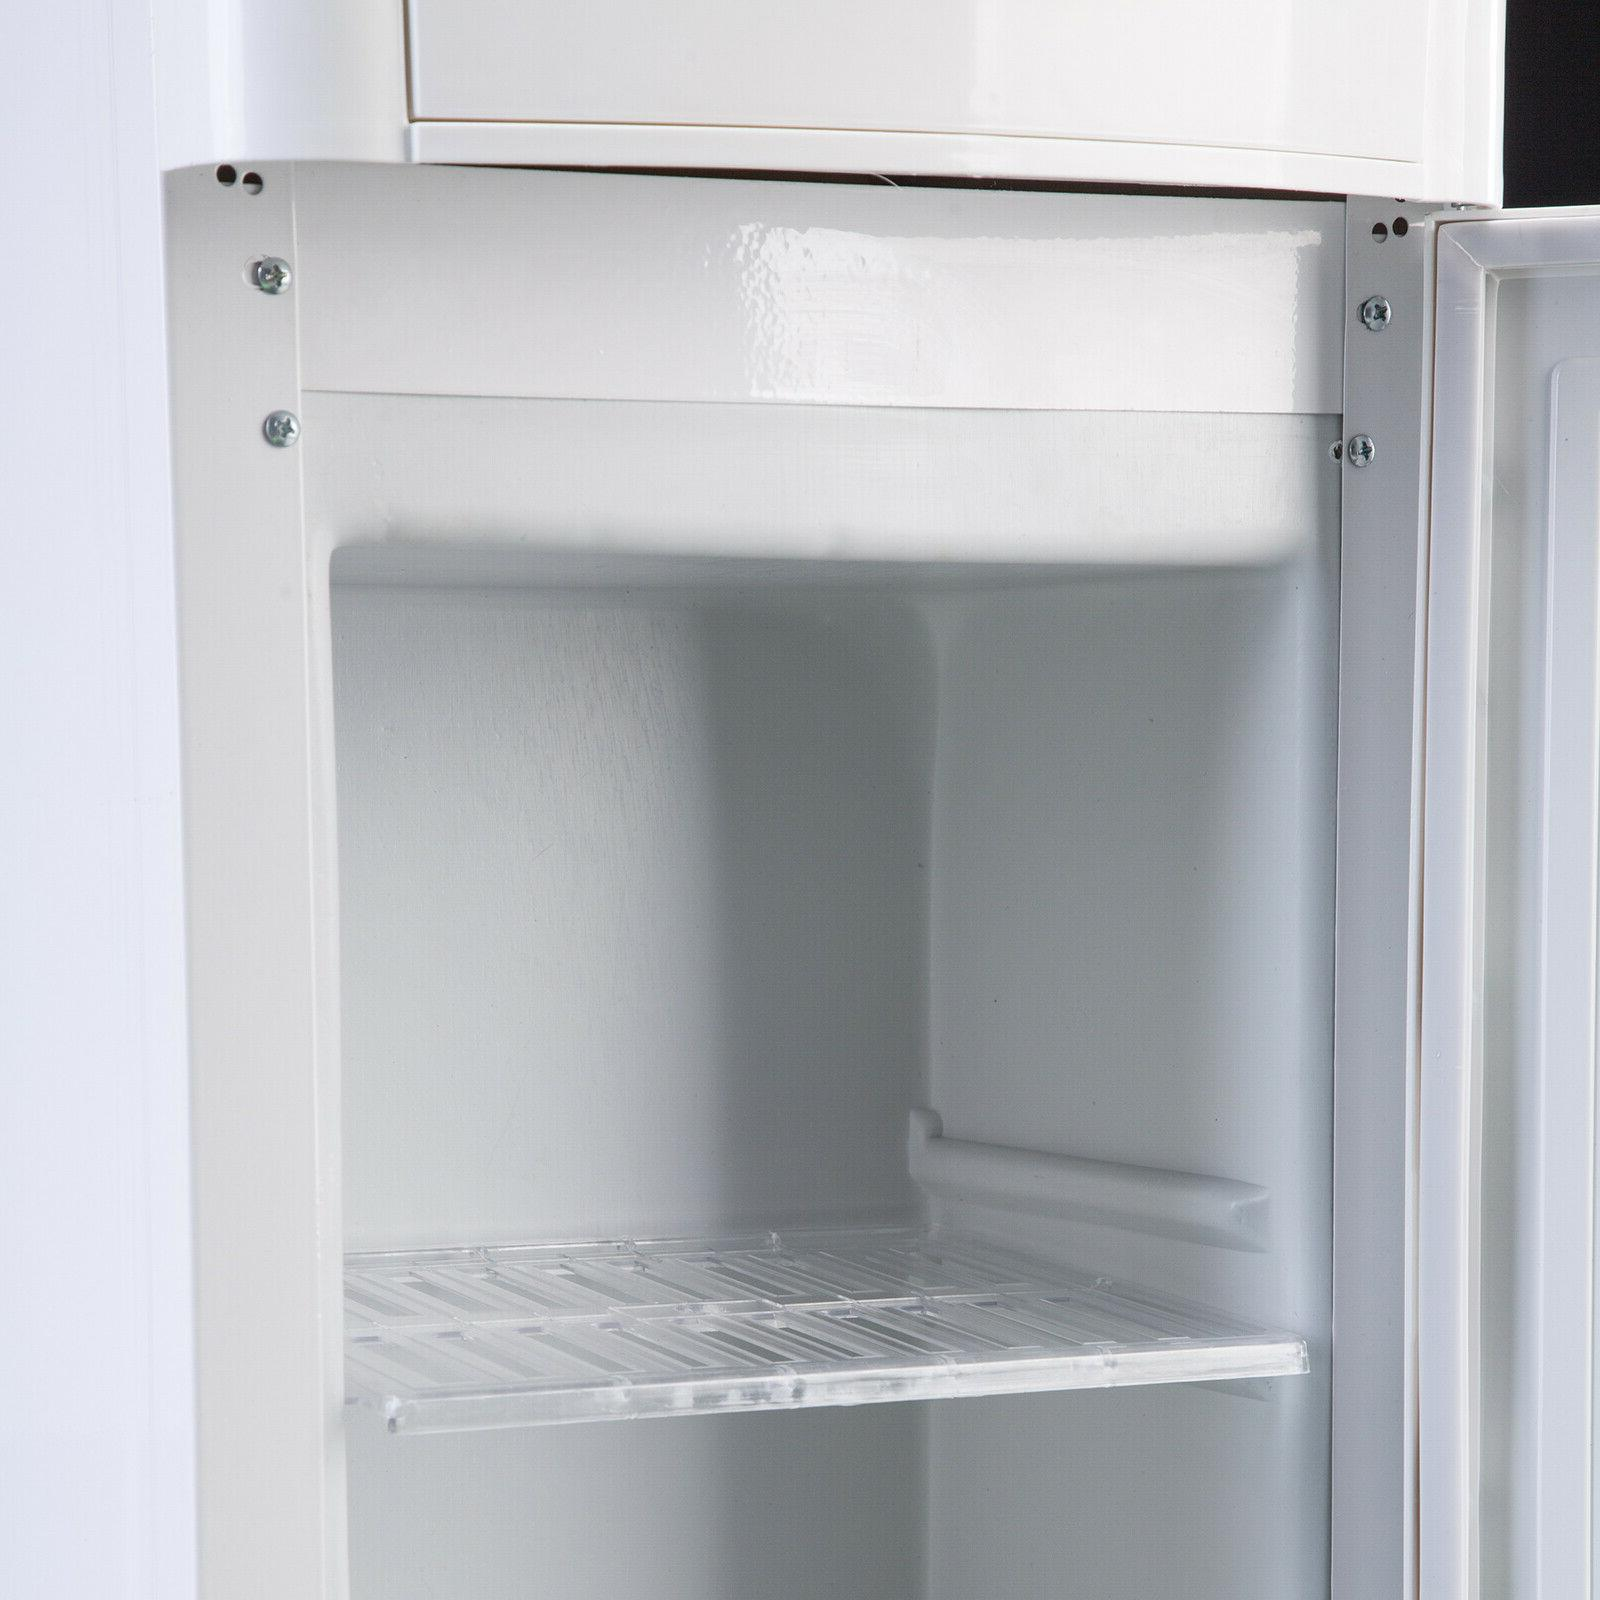 Water Cooler Dispenser Loading Hot/Cold Water